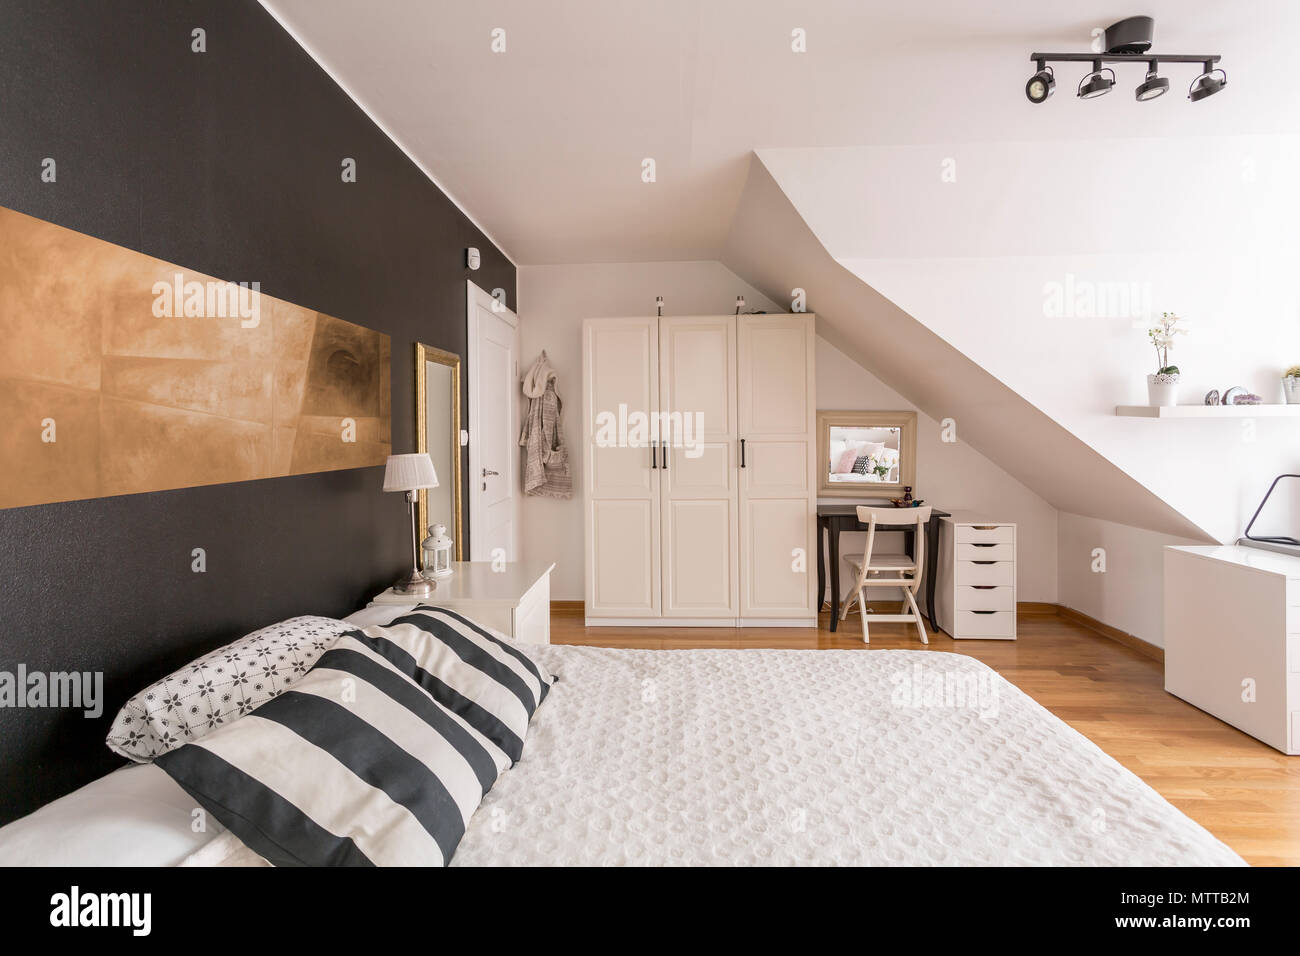 Spacious Attic Bedroom With Black And White Walls Large Bed And Simple White Furniture Stock Photo Alamy